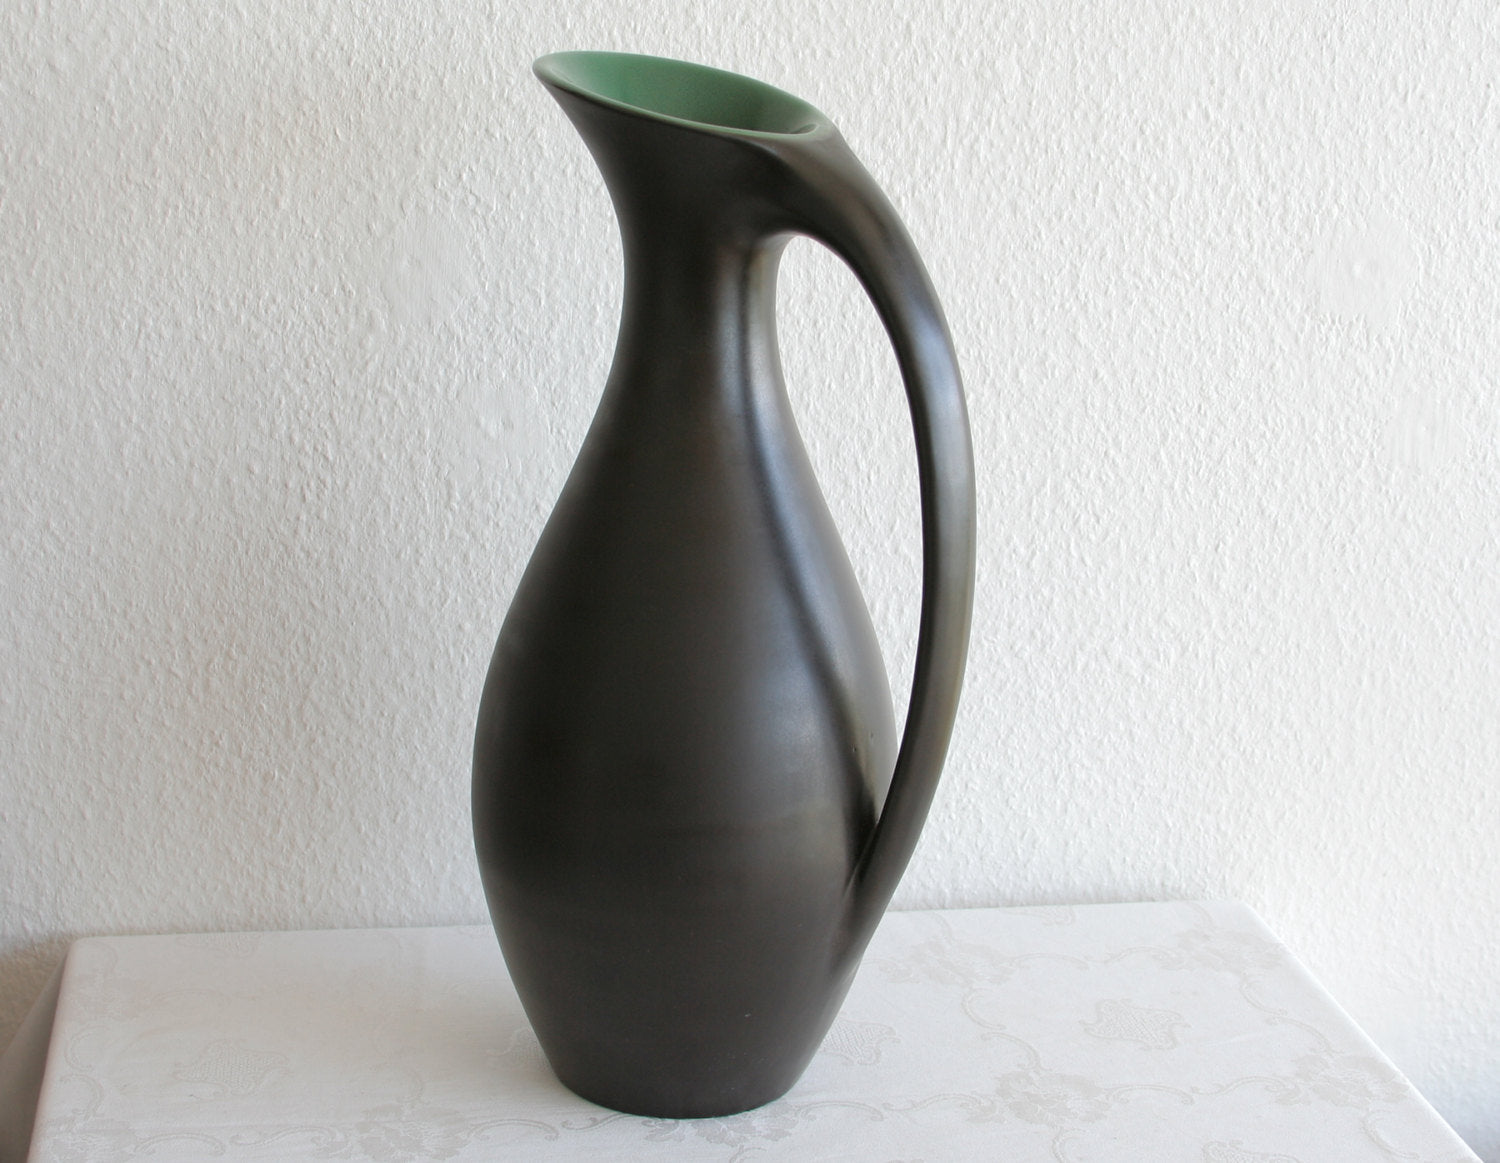 MØRKØV Monumental Black Green Glazed Ceramic Floor Vase - Mollaris.com